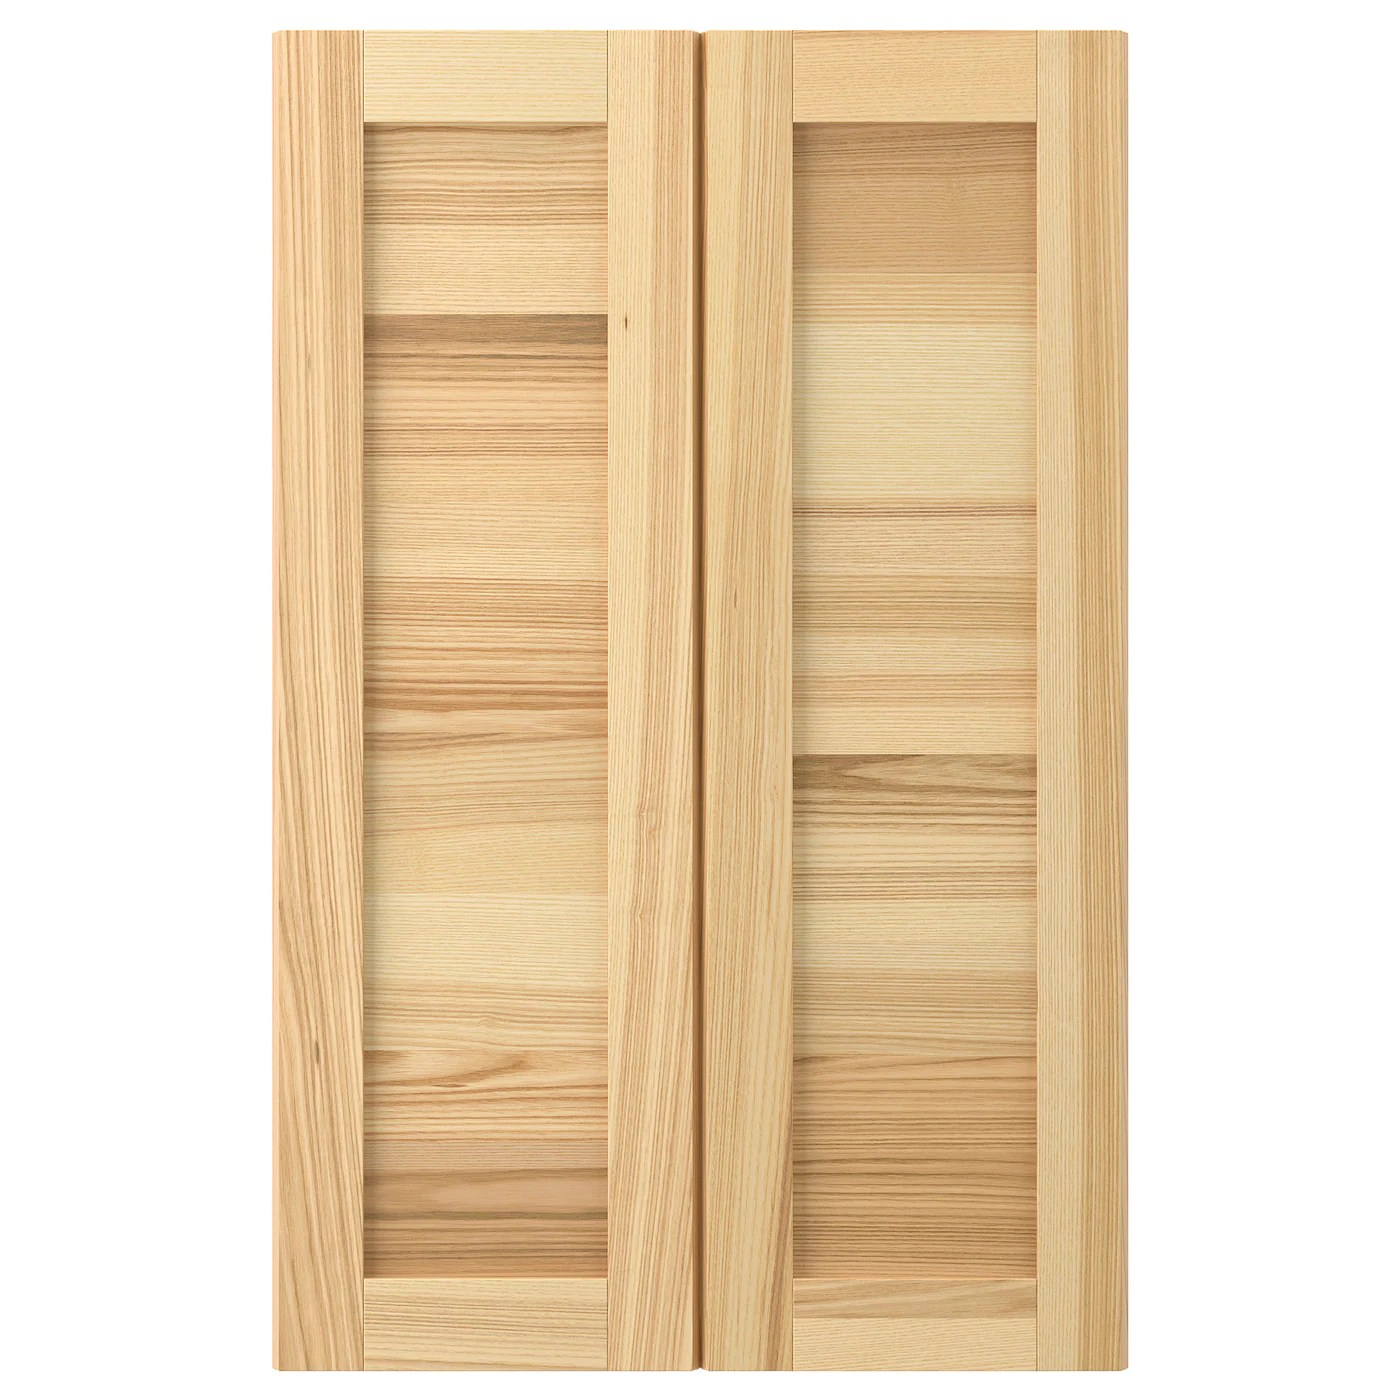 Kitchen Cupboard Doors 50 X 70 Kitchen Doors Kitchen Cupboard Doors Ikea